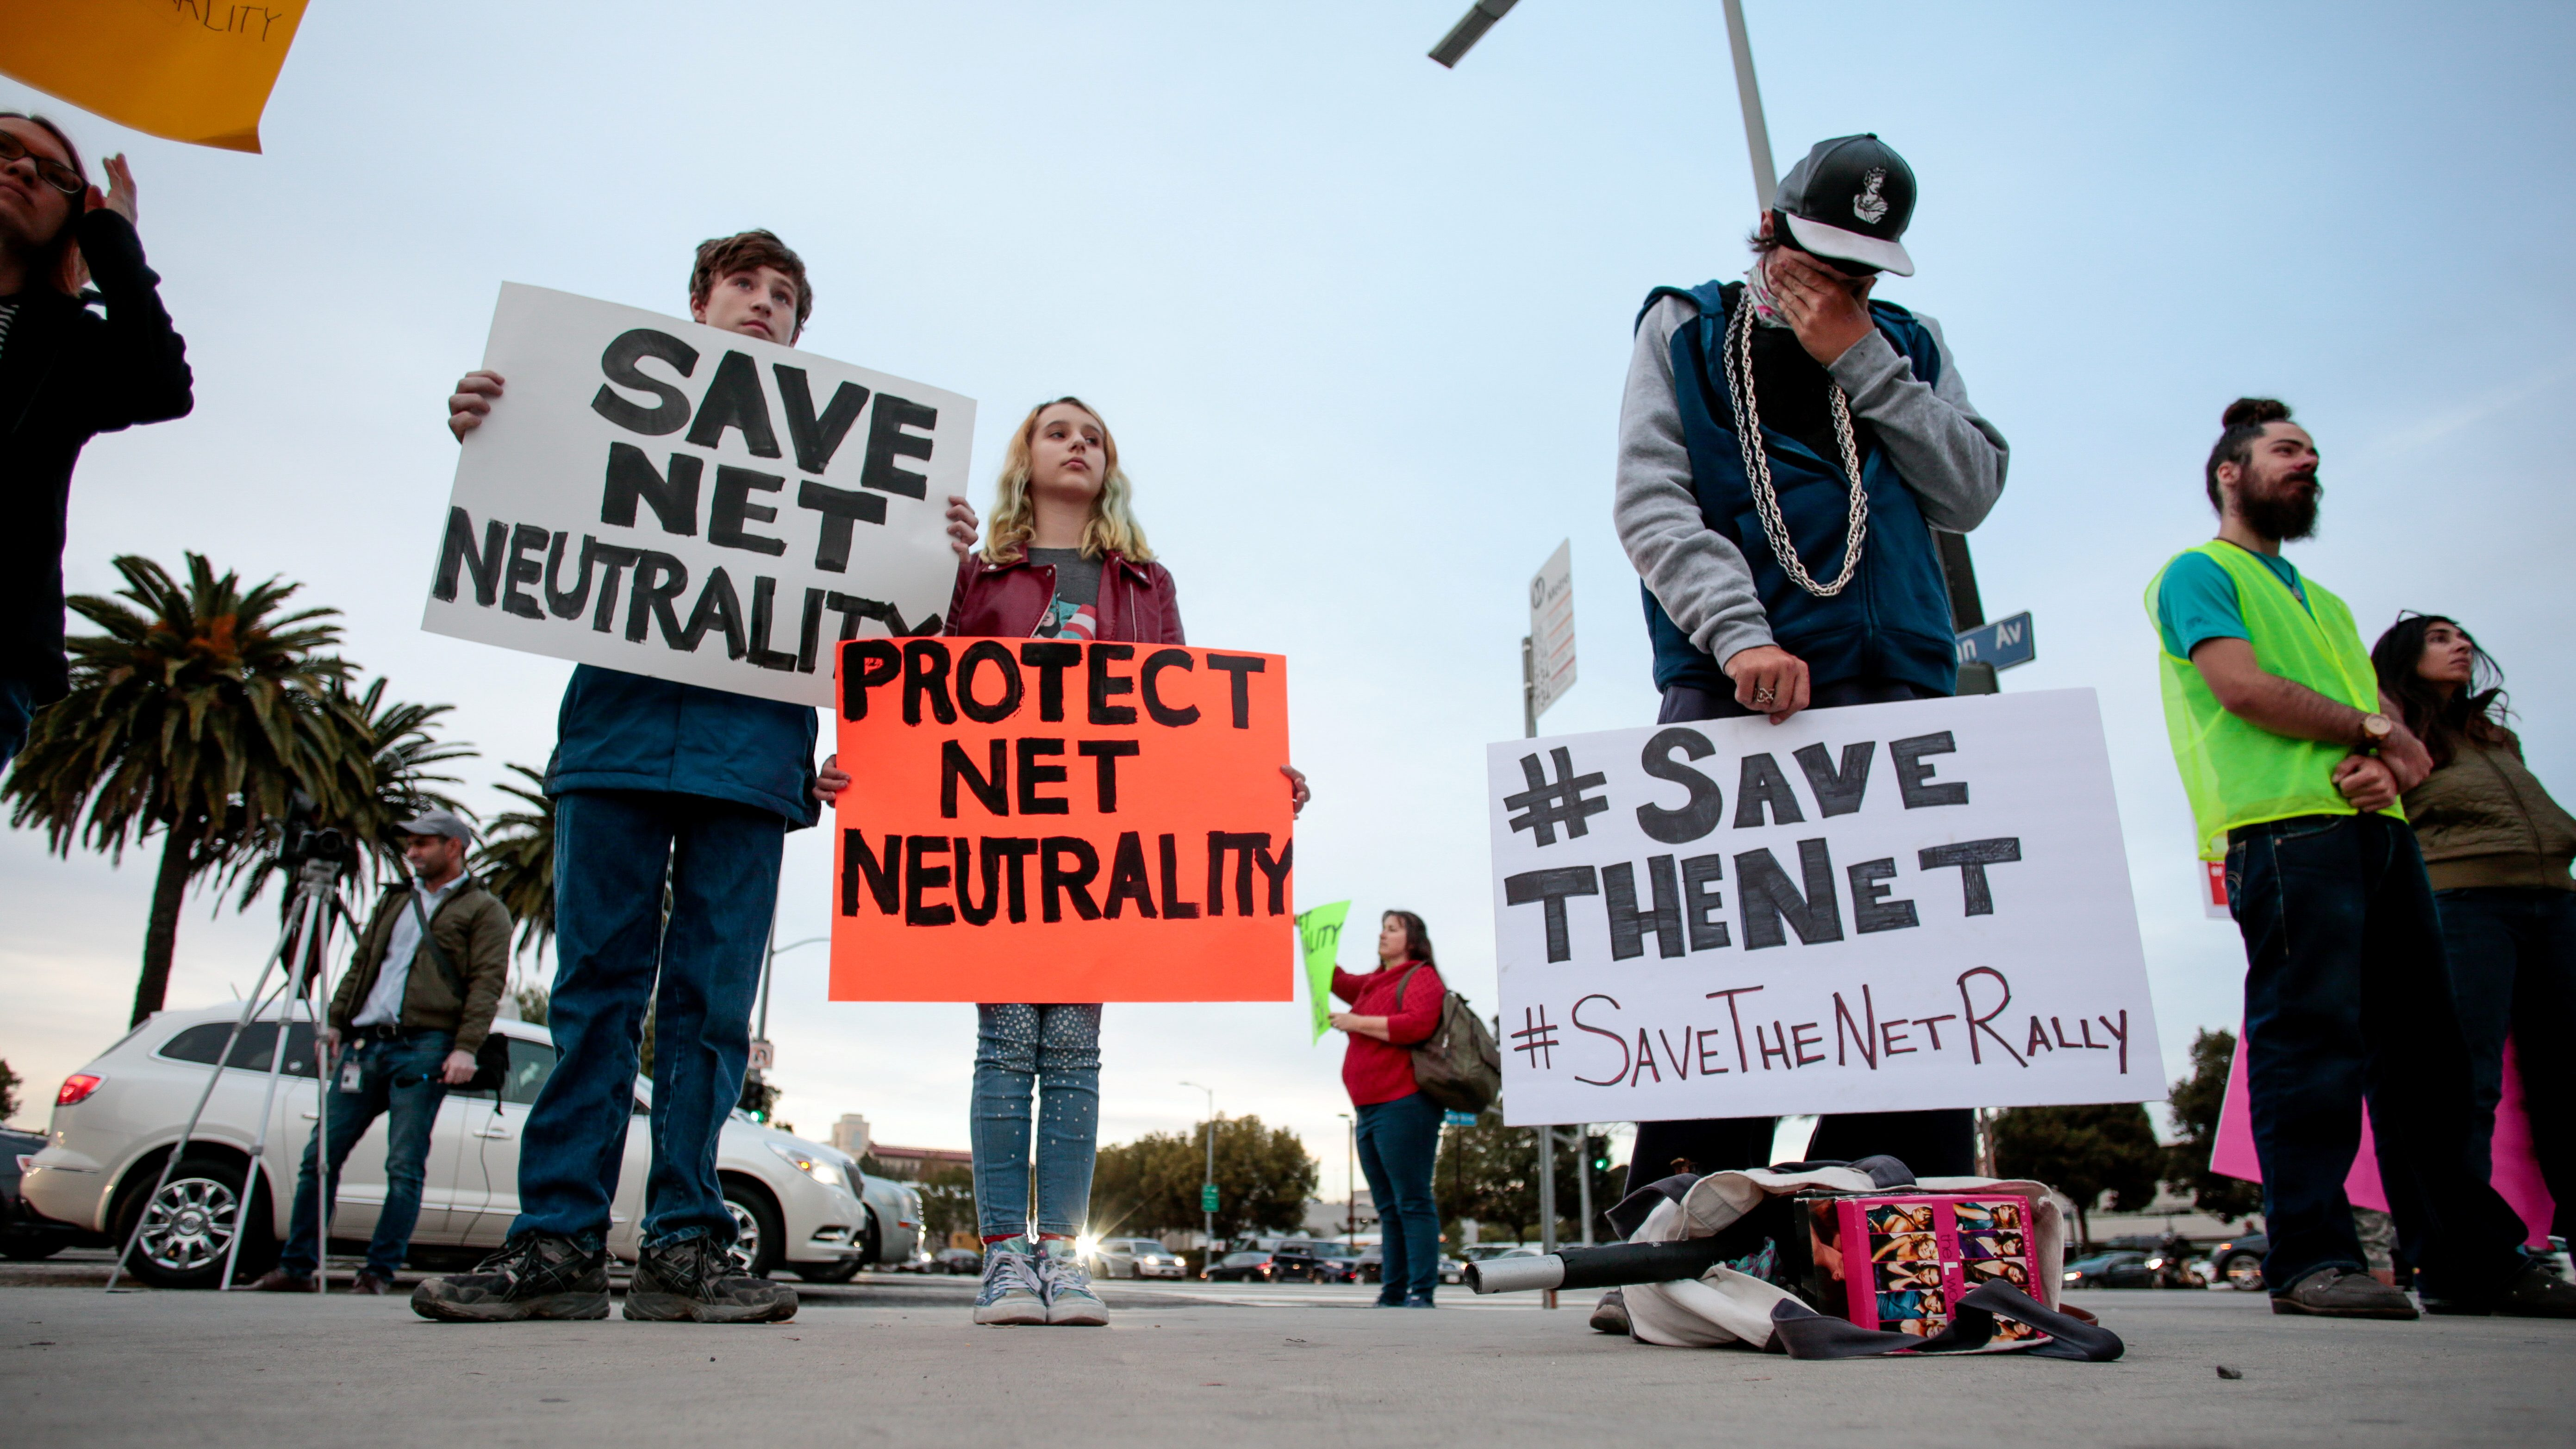 Supporters of Net Neutrality protest the FCC's recent decision to repeal the program in Los Angeles, California, November 28, 2017. REUTERS/ Kyle Grillot - RC1F4D196190